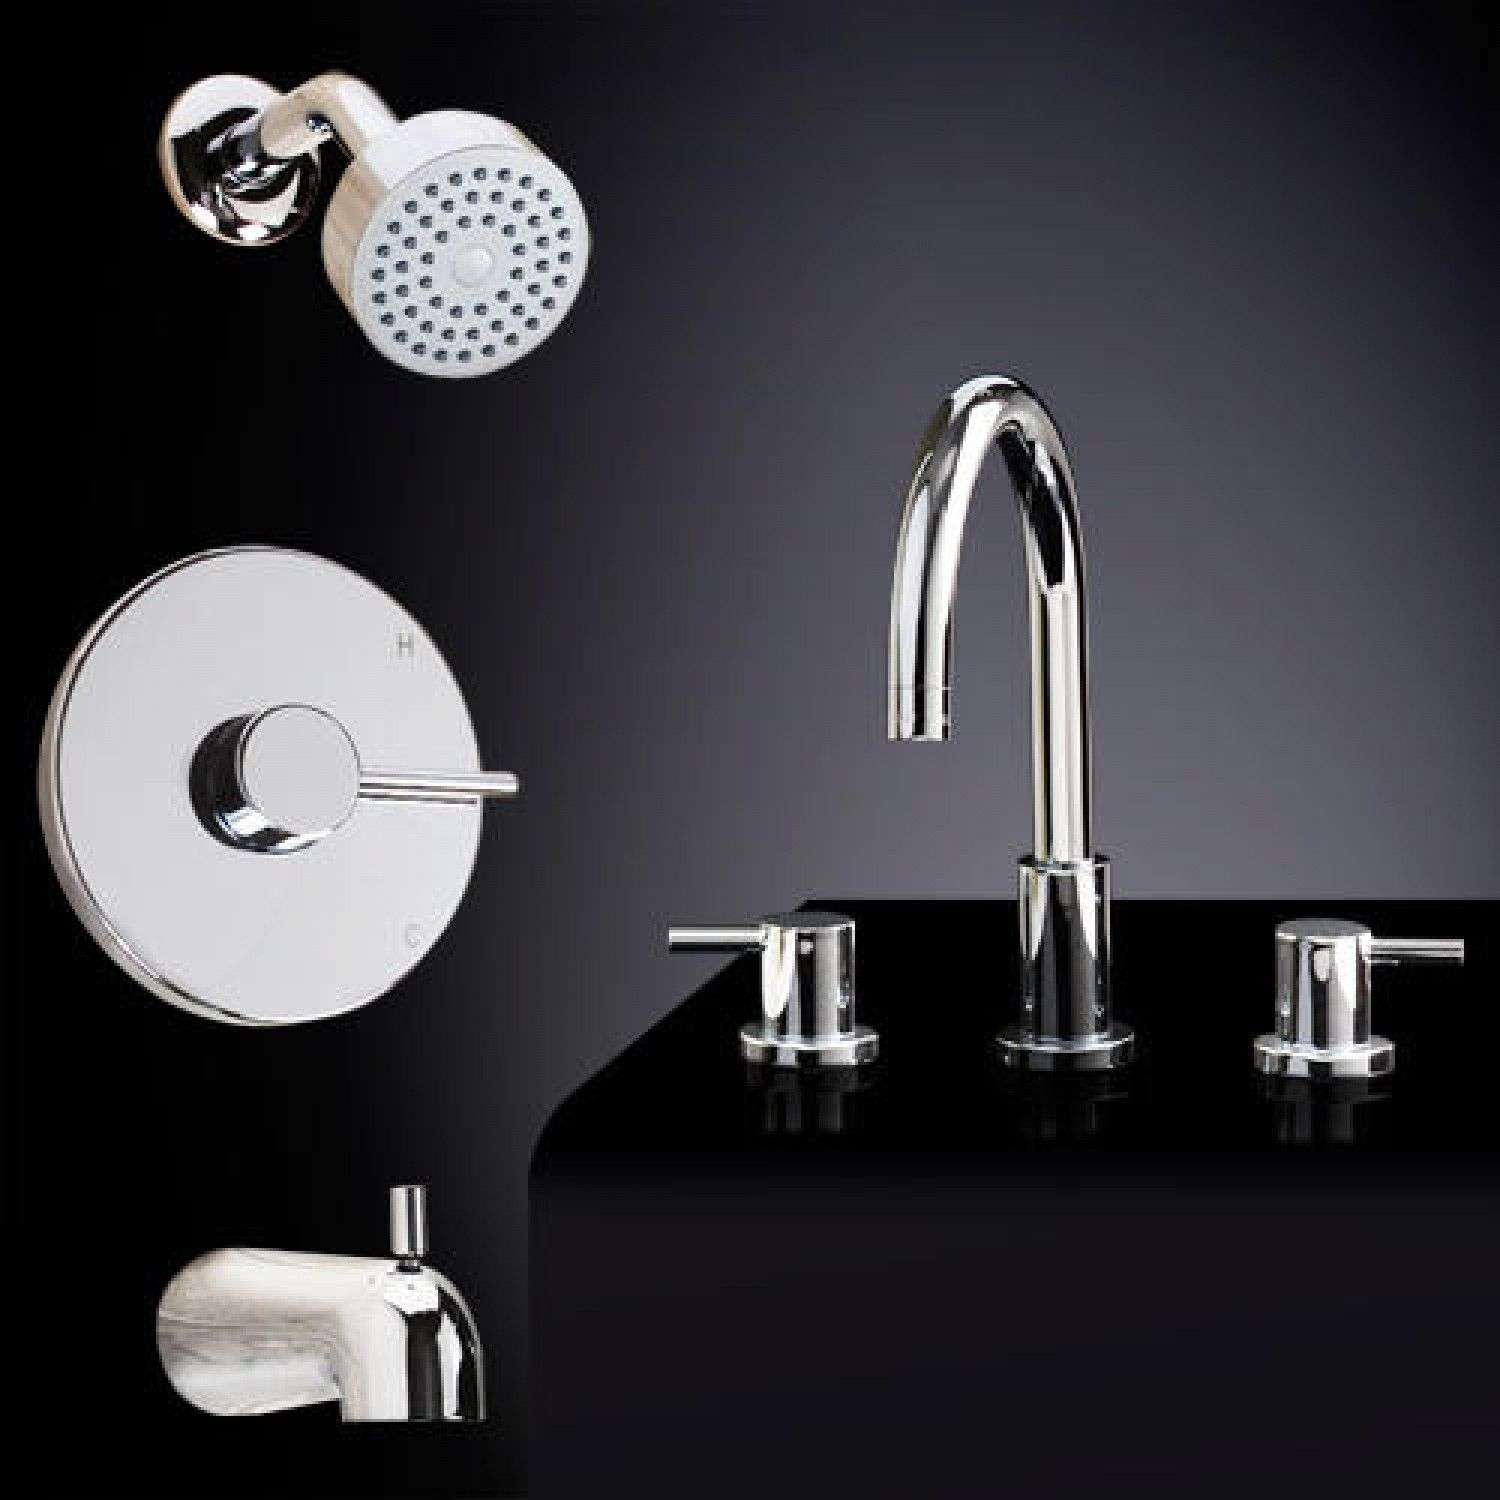 Rotunda Tub Shower Set 2 With Widespread Sink Faucet